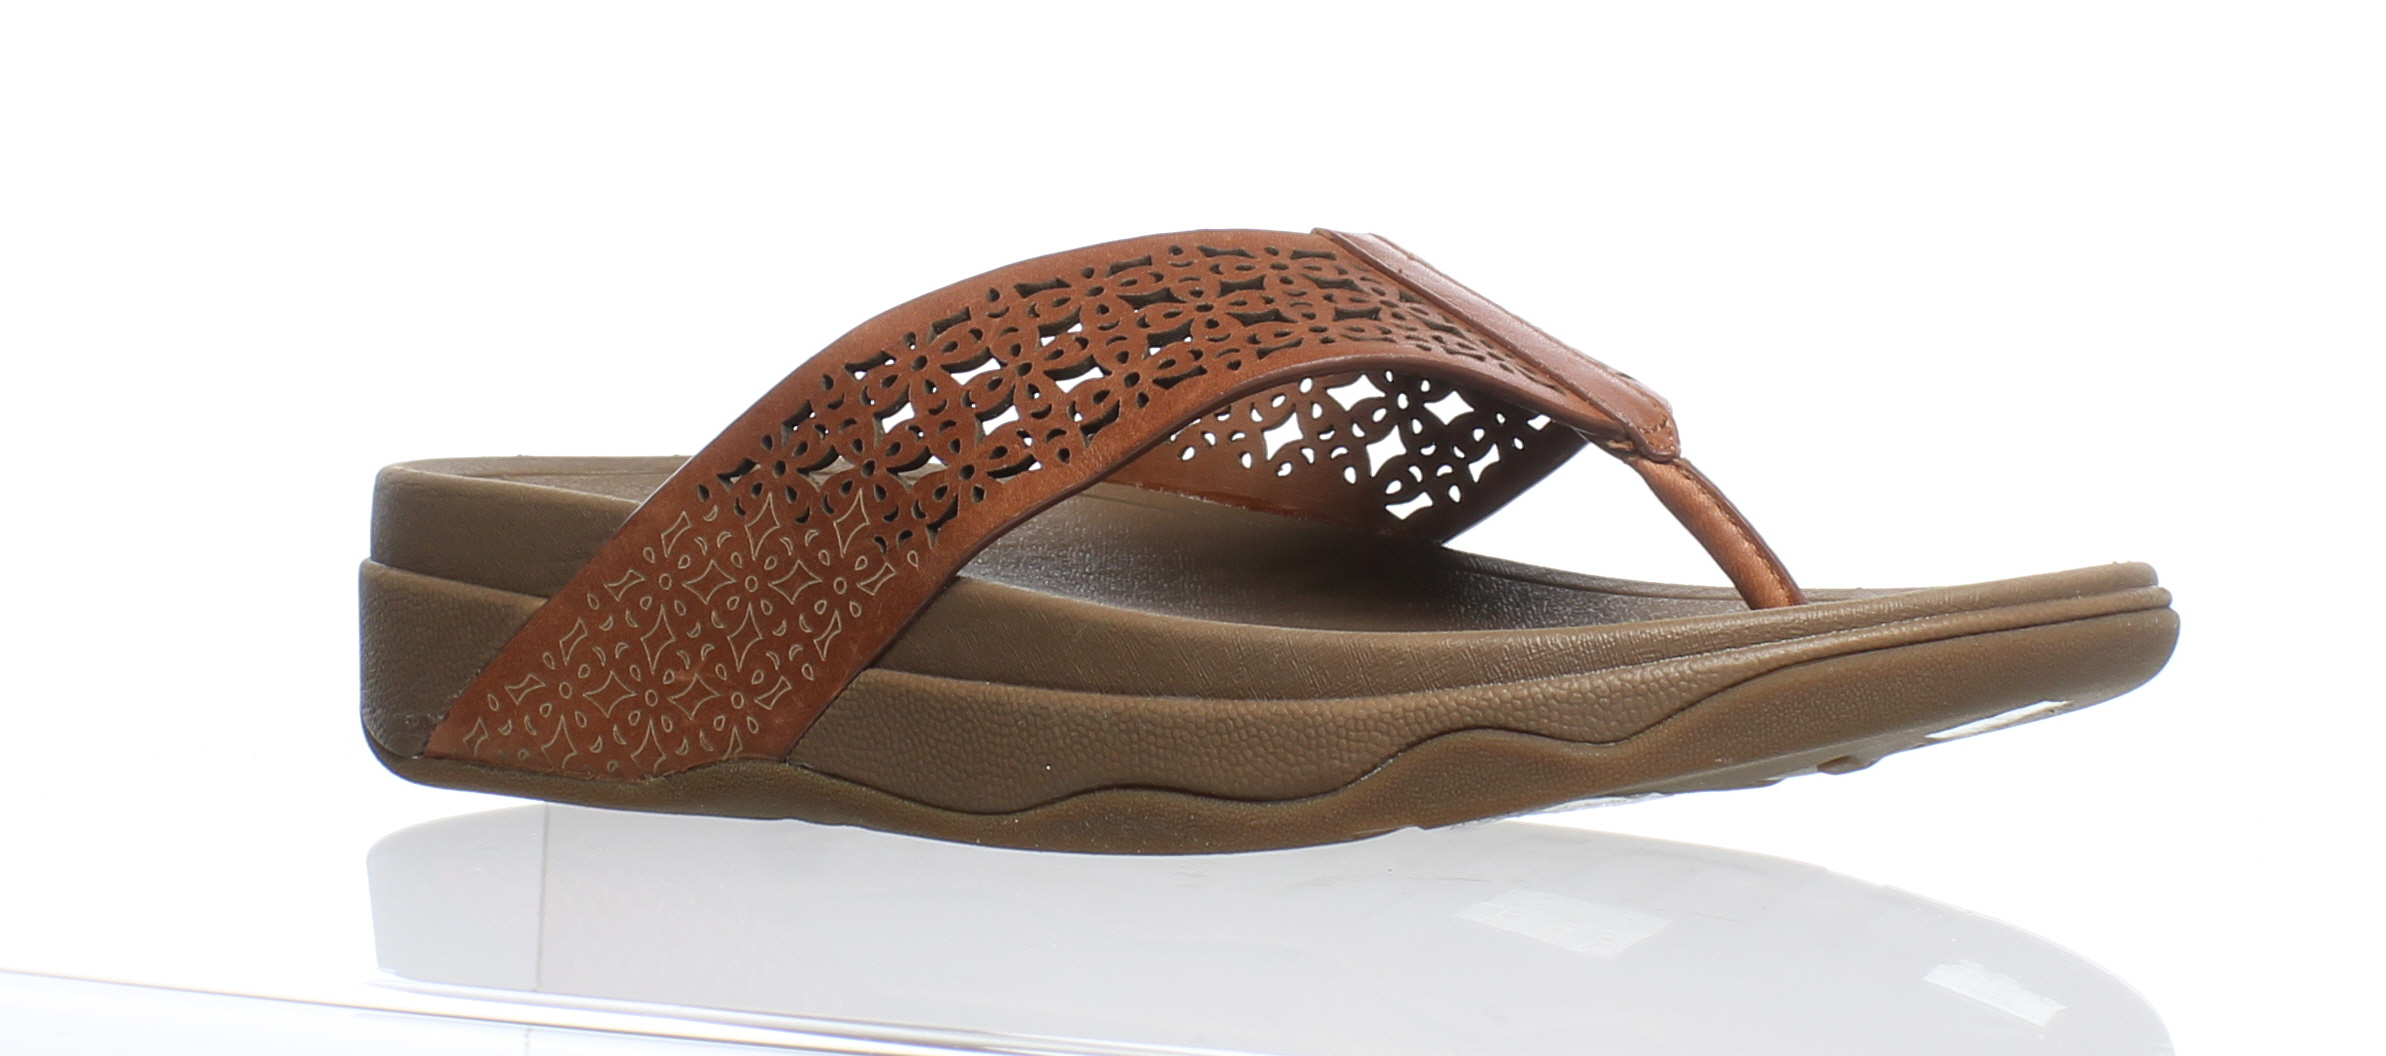 ed6ee234dd86f8 Details about FitFlop Womens Surfa Floral Lattice Dark Tan Flip Flops Size 7  (173217)